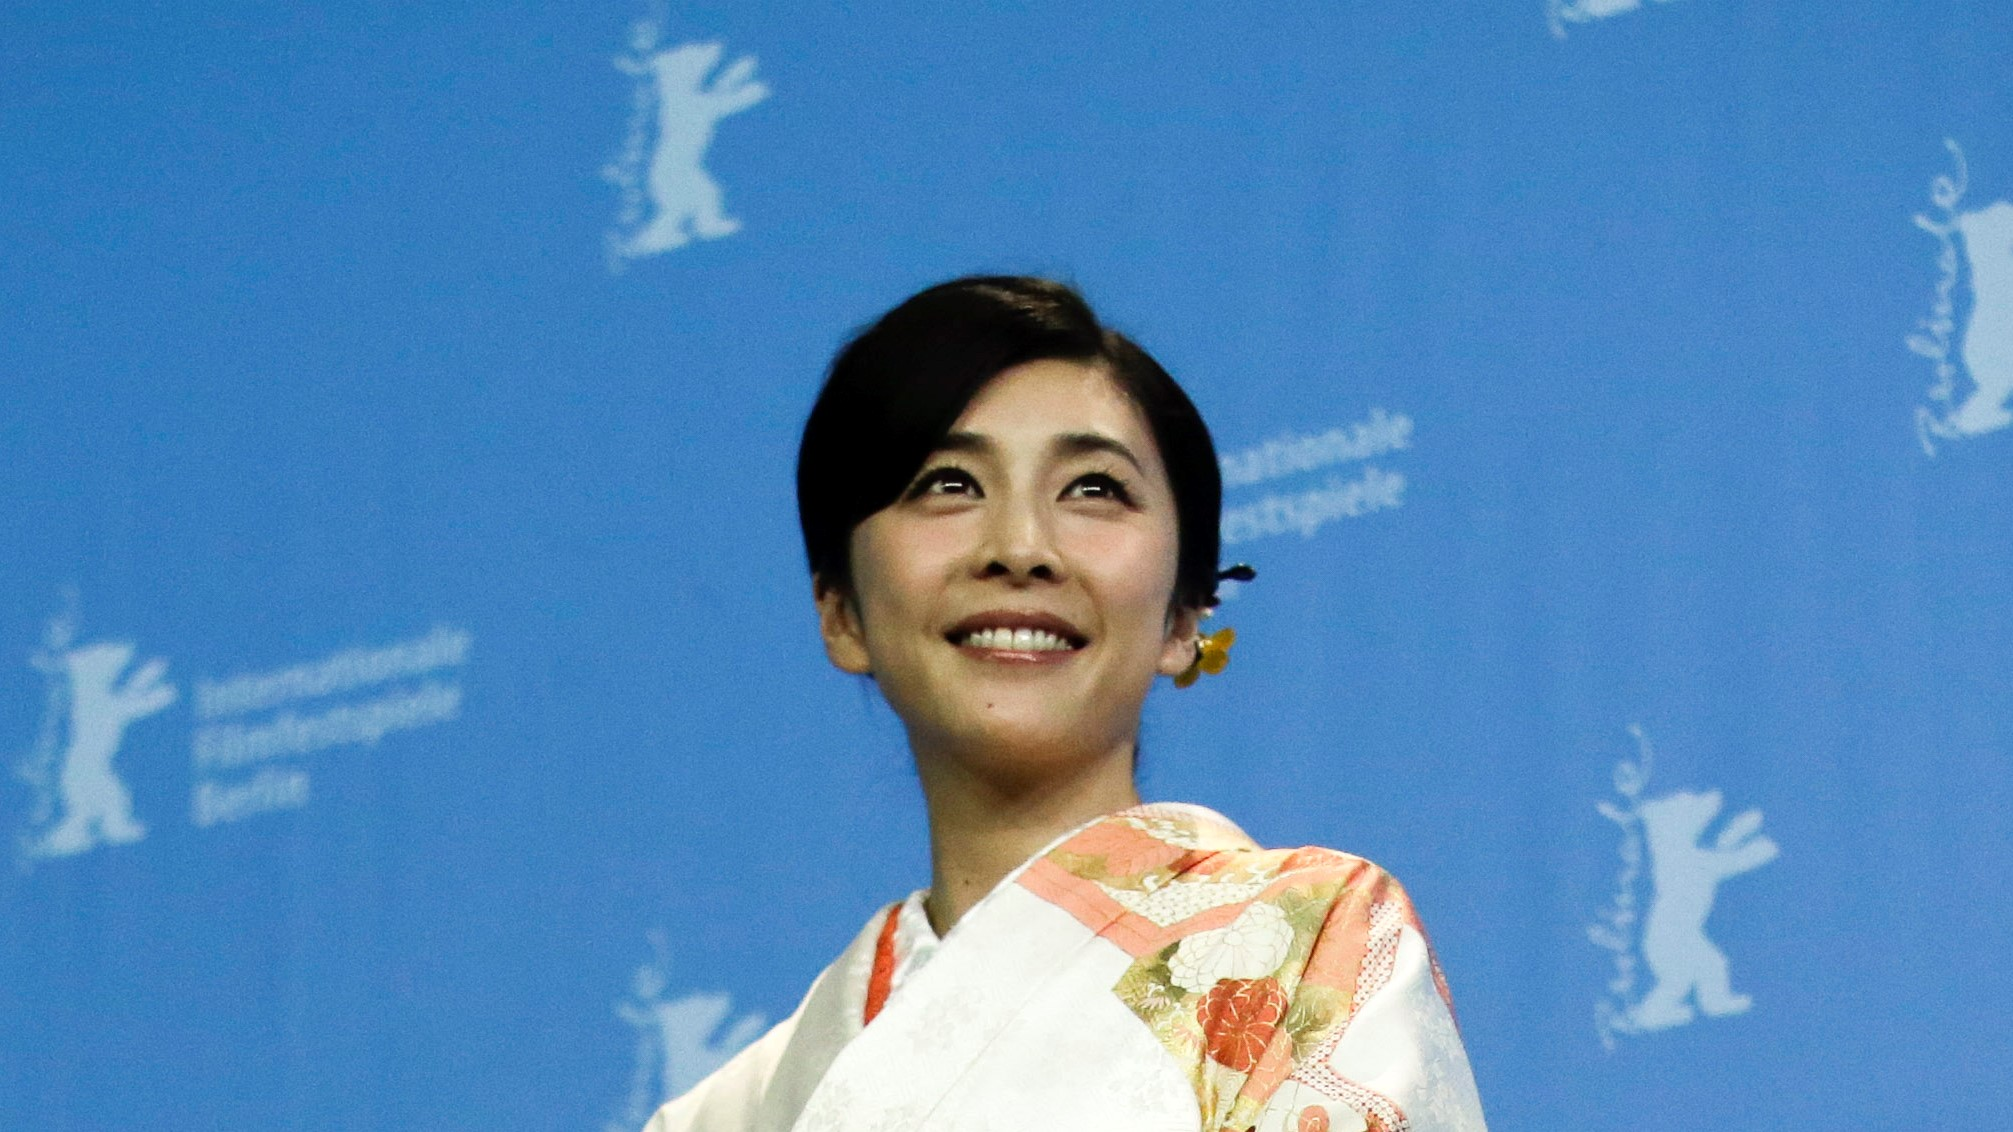 Takeuchi Yuko, Japanese Actress, Dies at 40